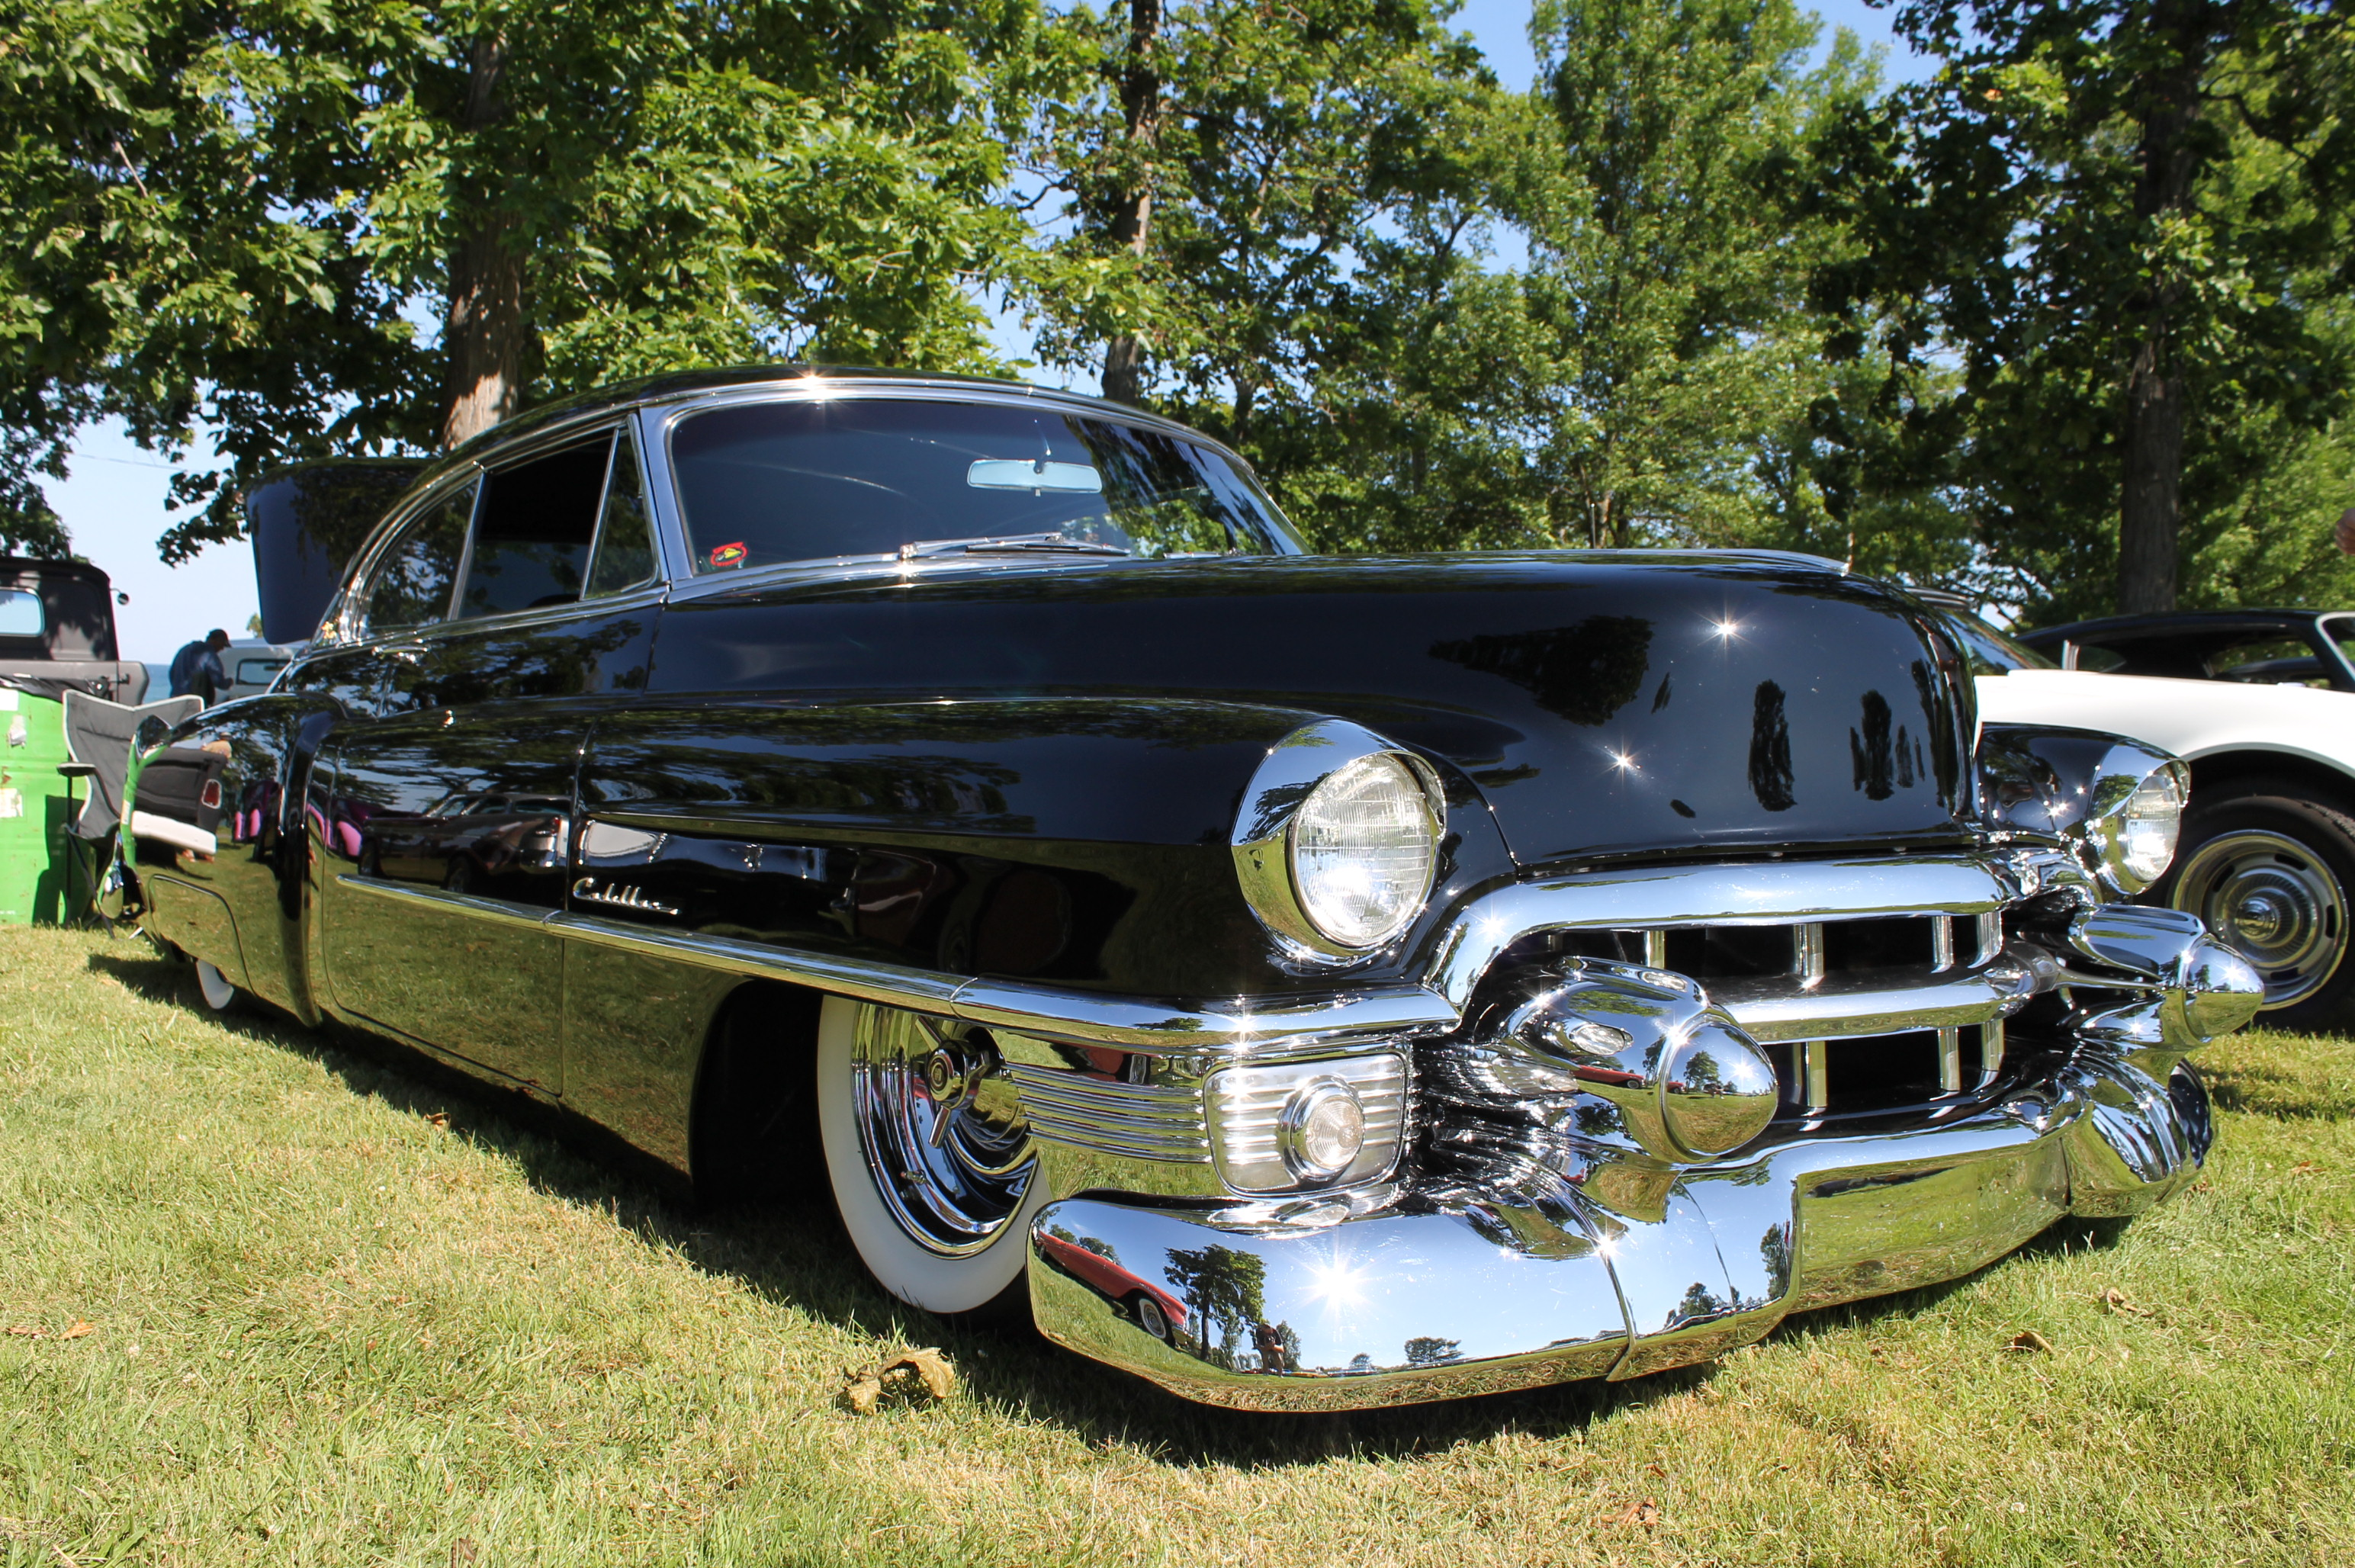 2014 Dunkirk Harbor Cruise Coverage: Great Cars, Great Scenery, and Great Photos